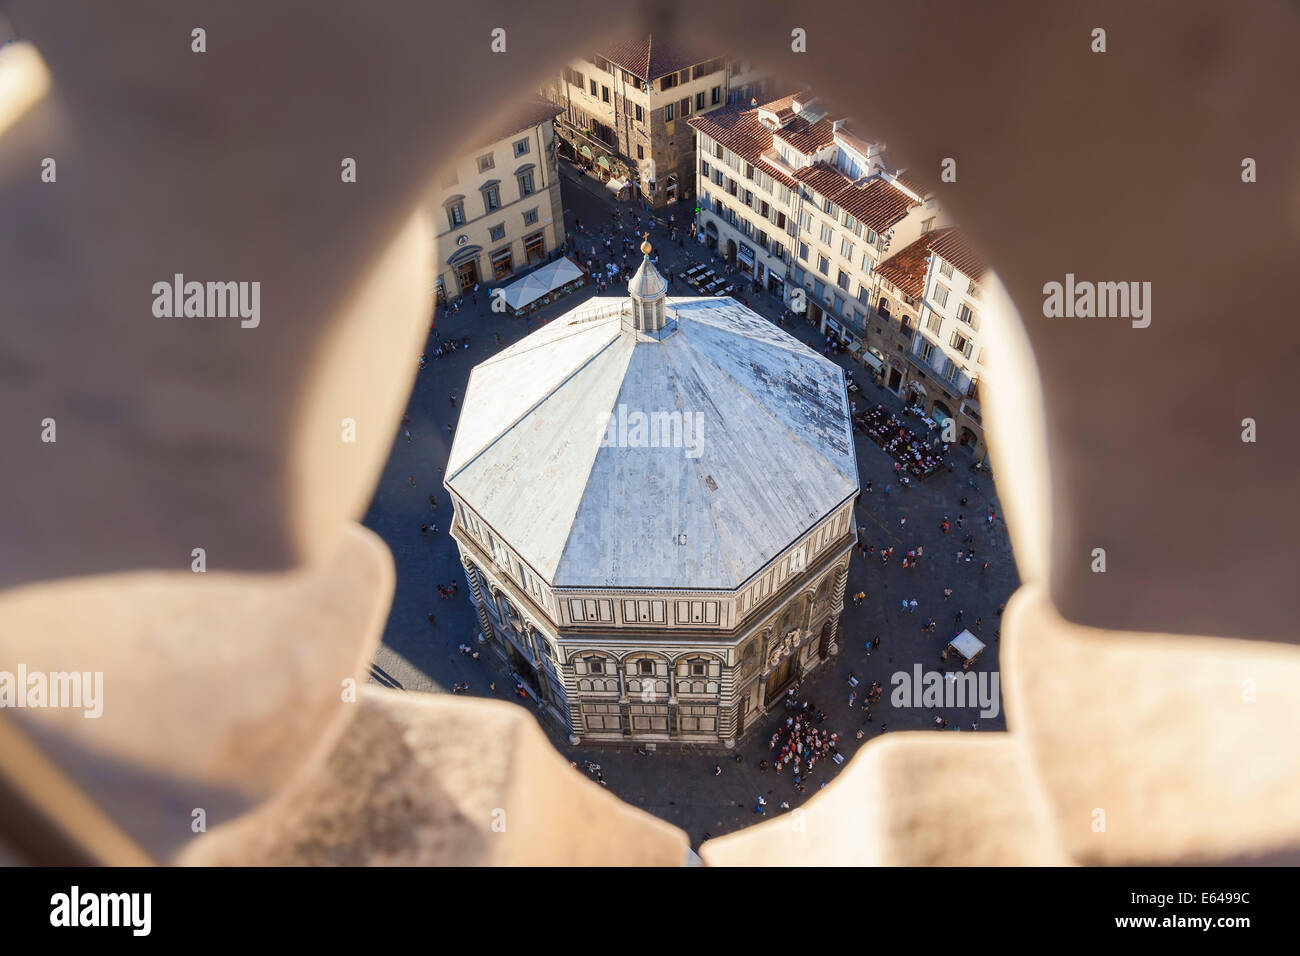 Baptistry in Piazza del Duomo, Florence, Italy - Stock Image